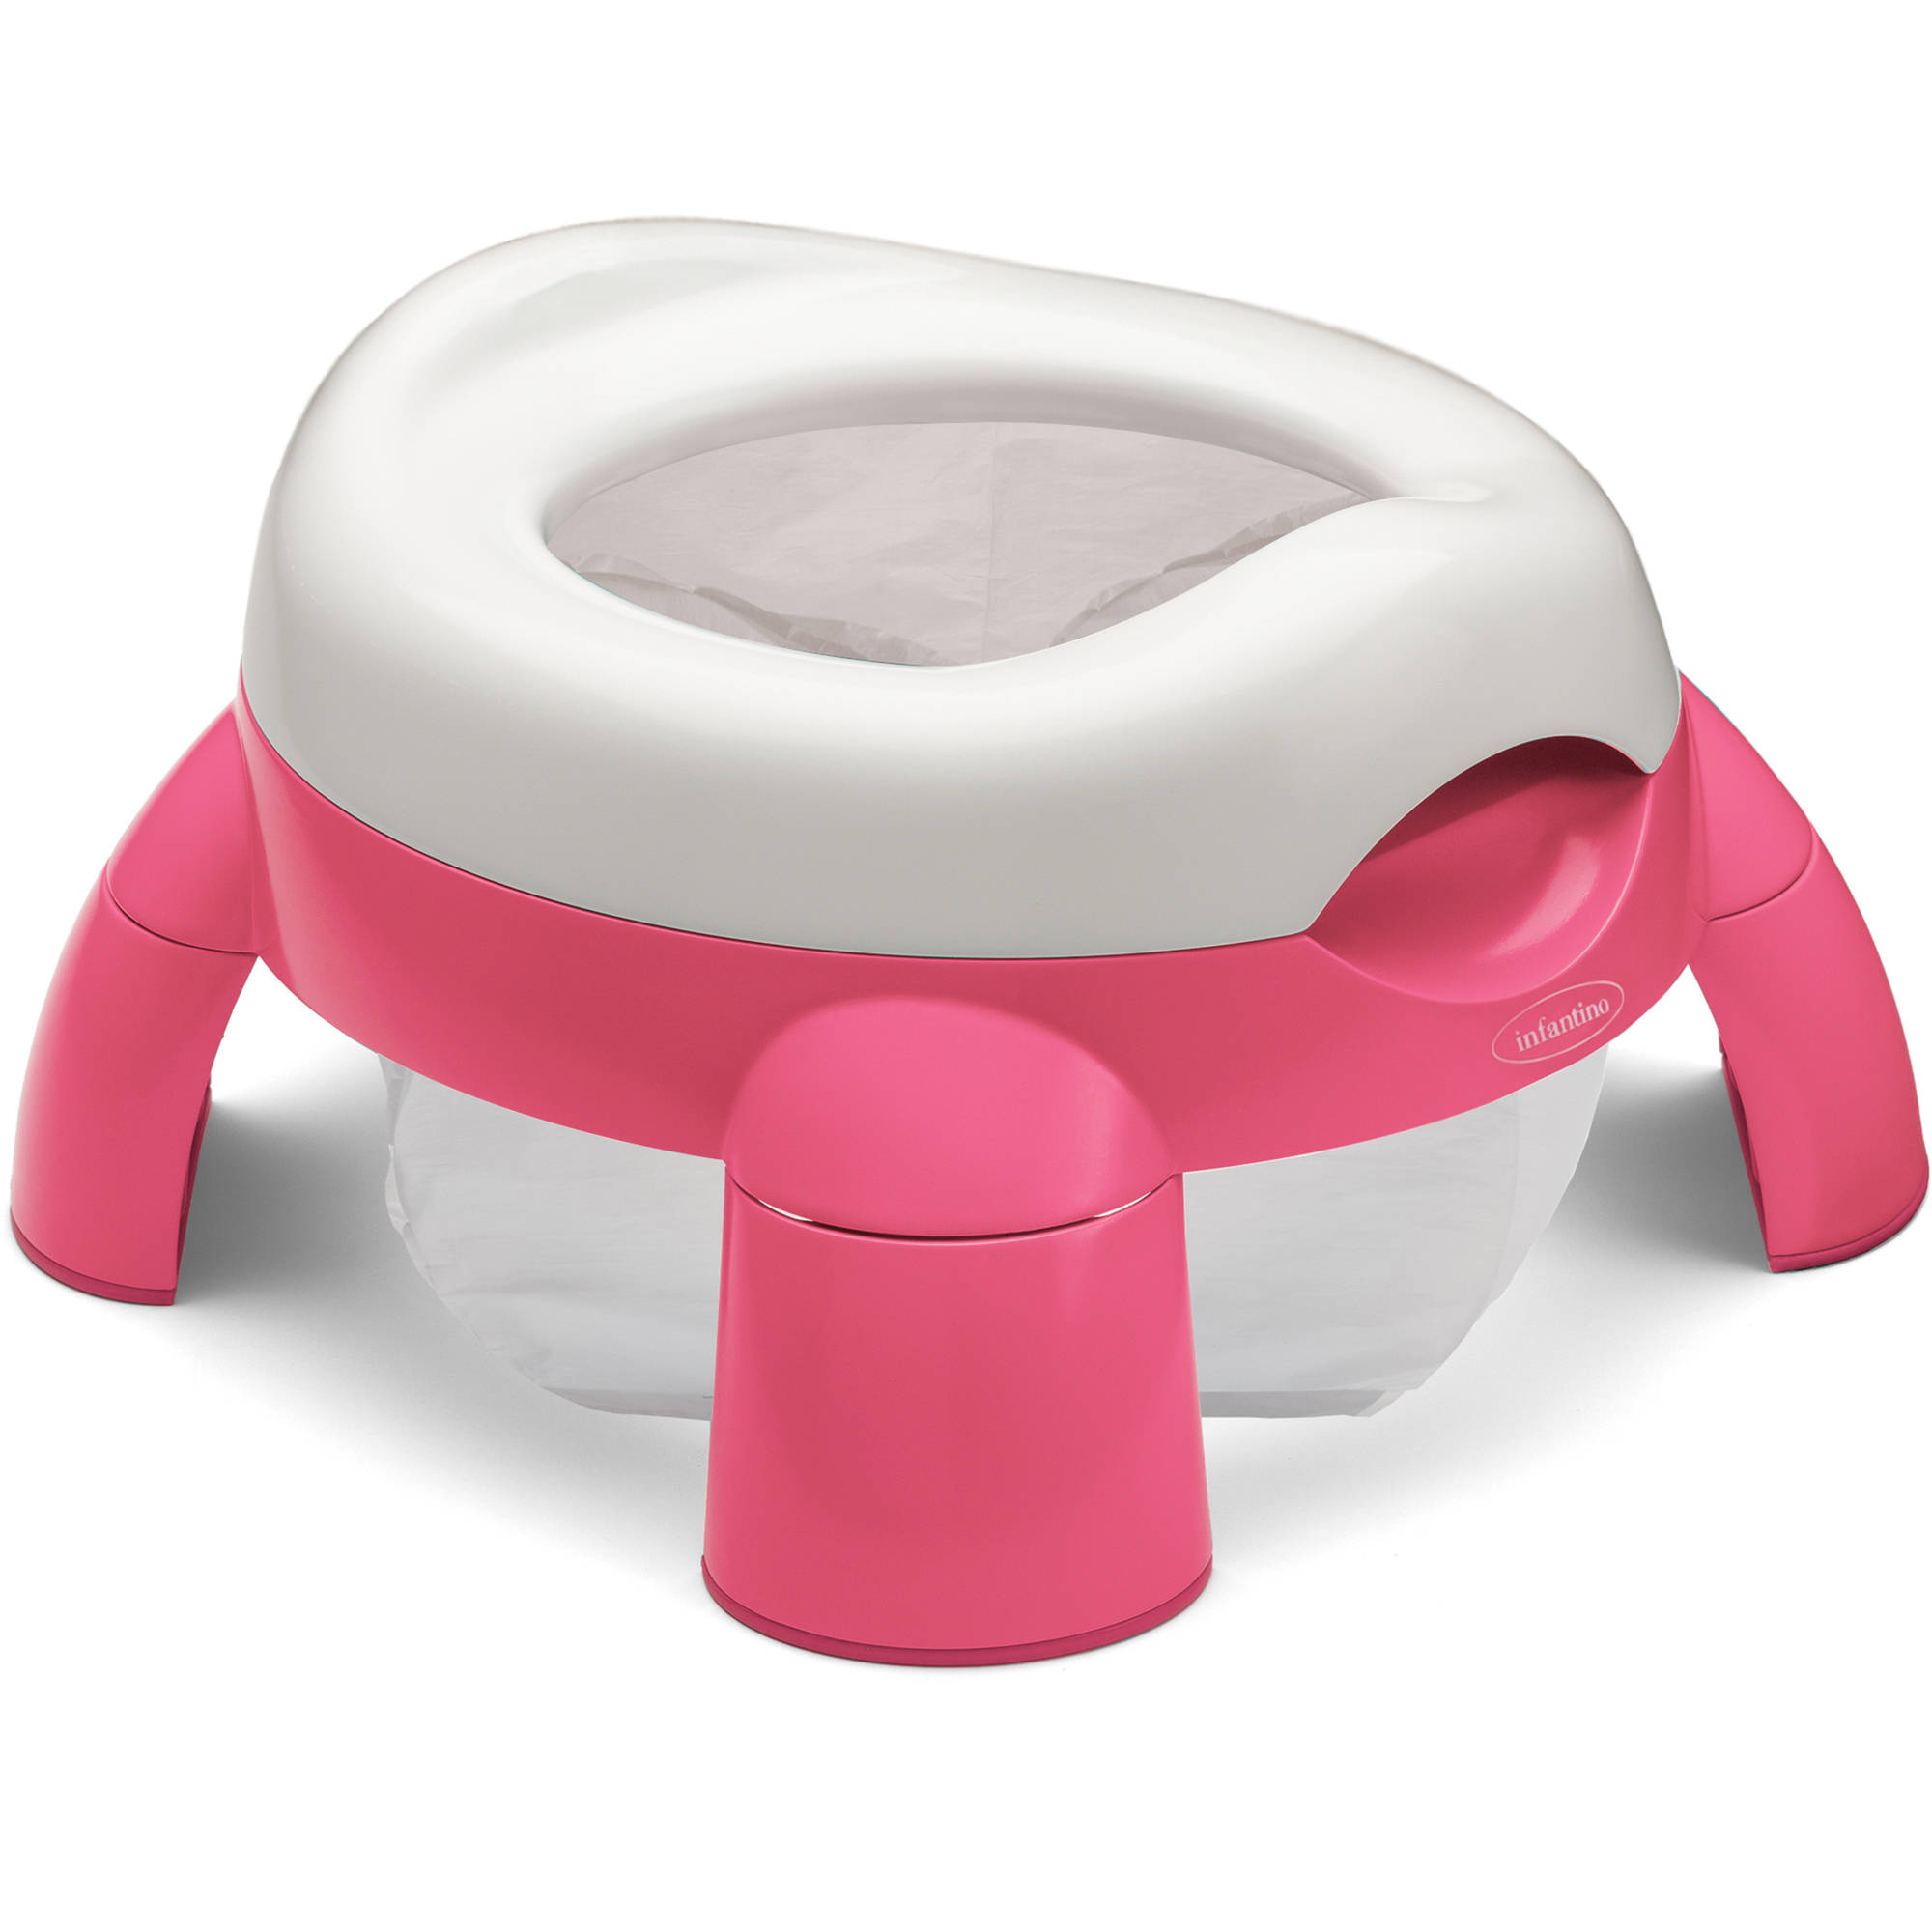 Infantino Up & Go Compact Travel Potty, Pink